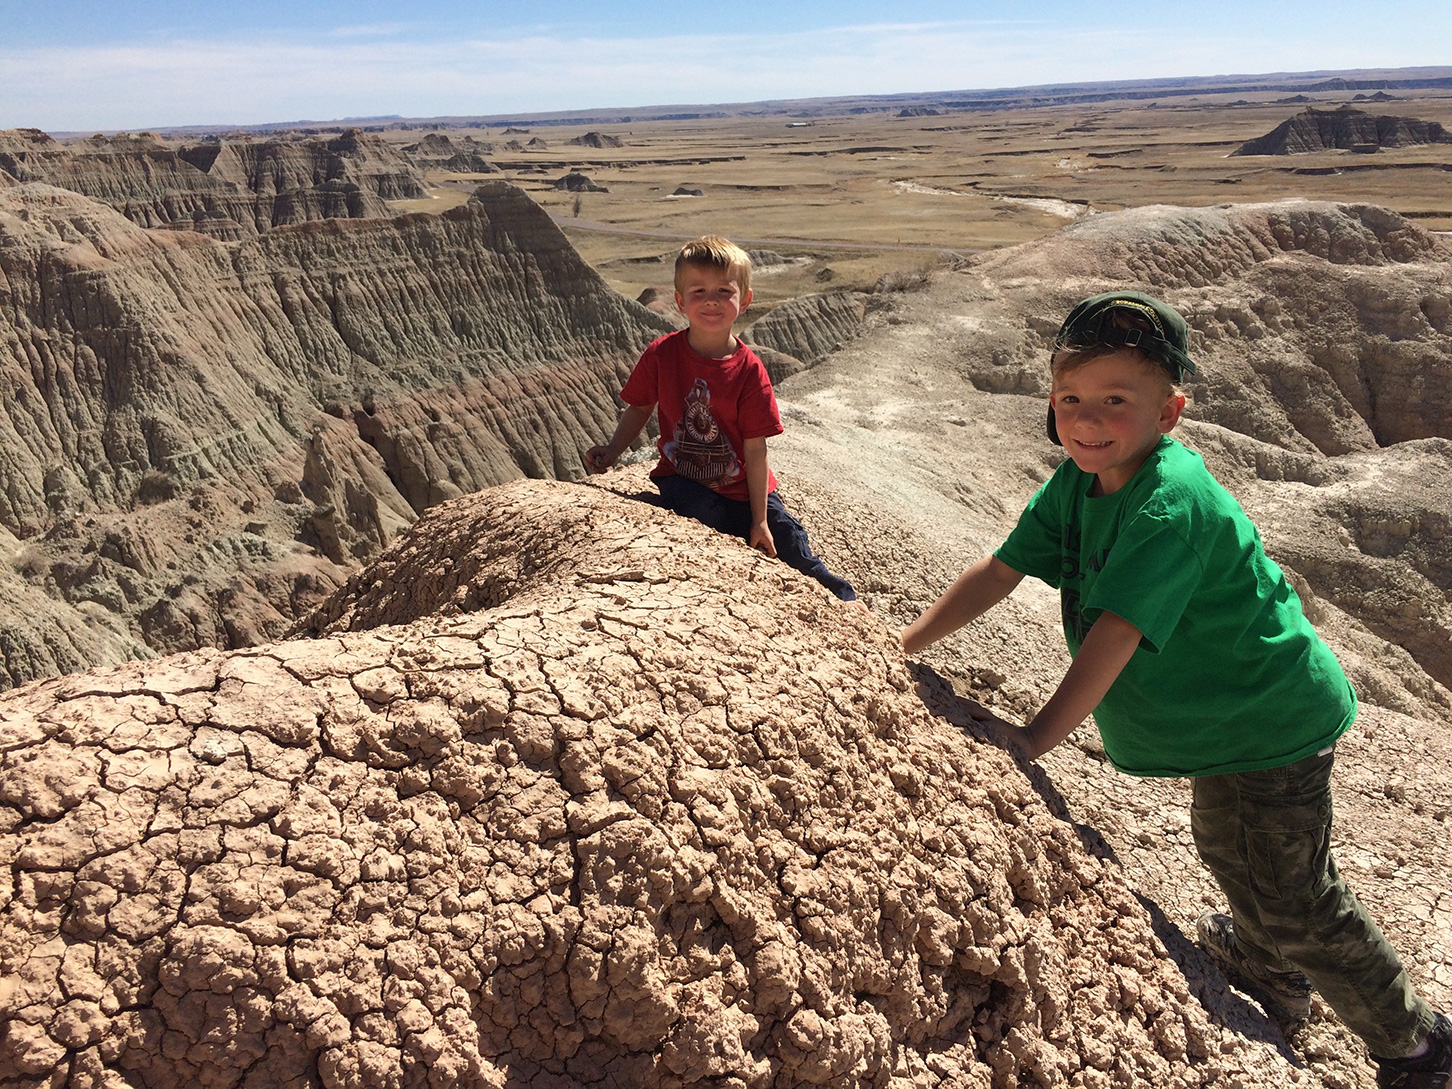 Two boys playing on rocks